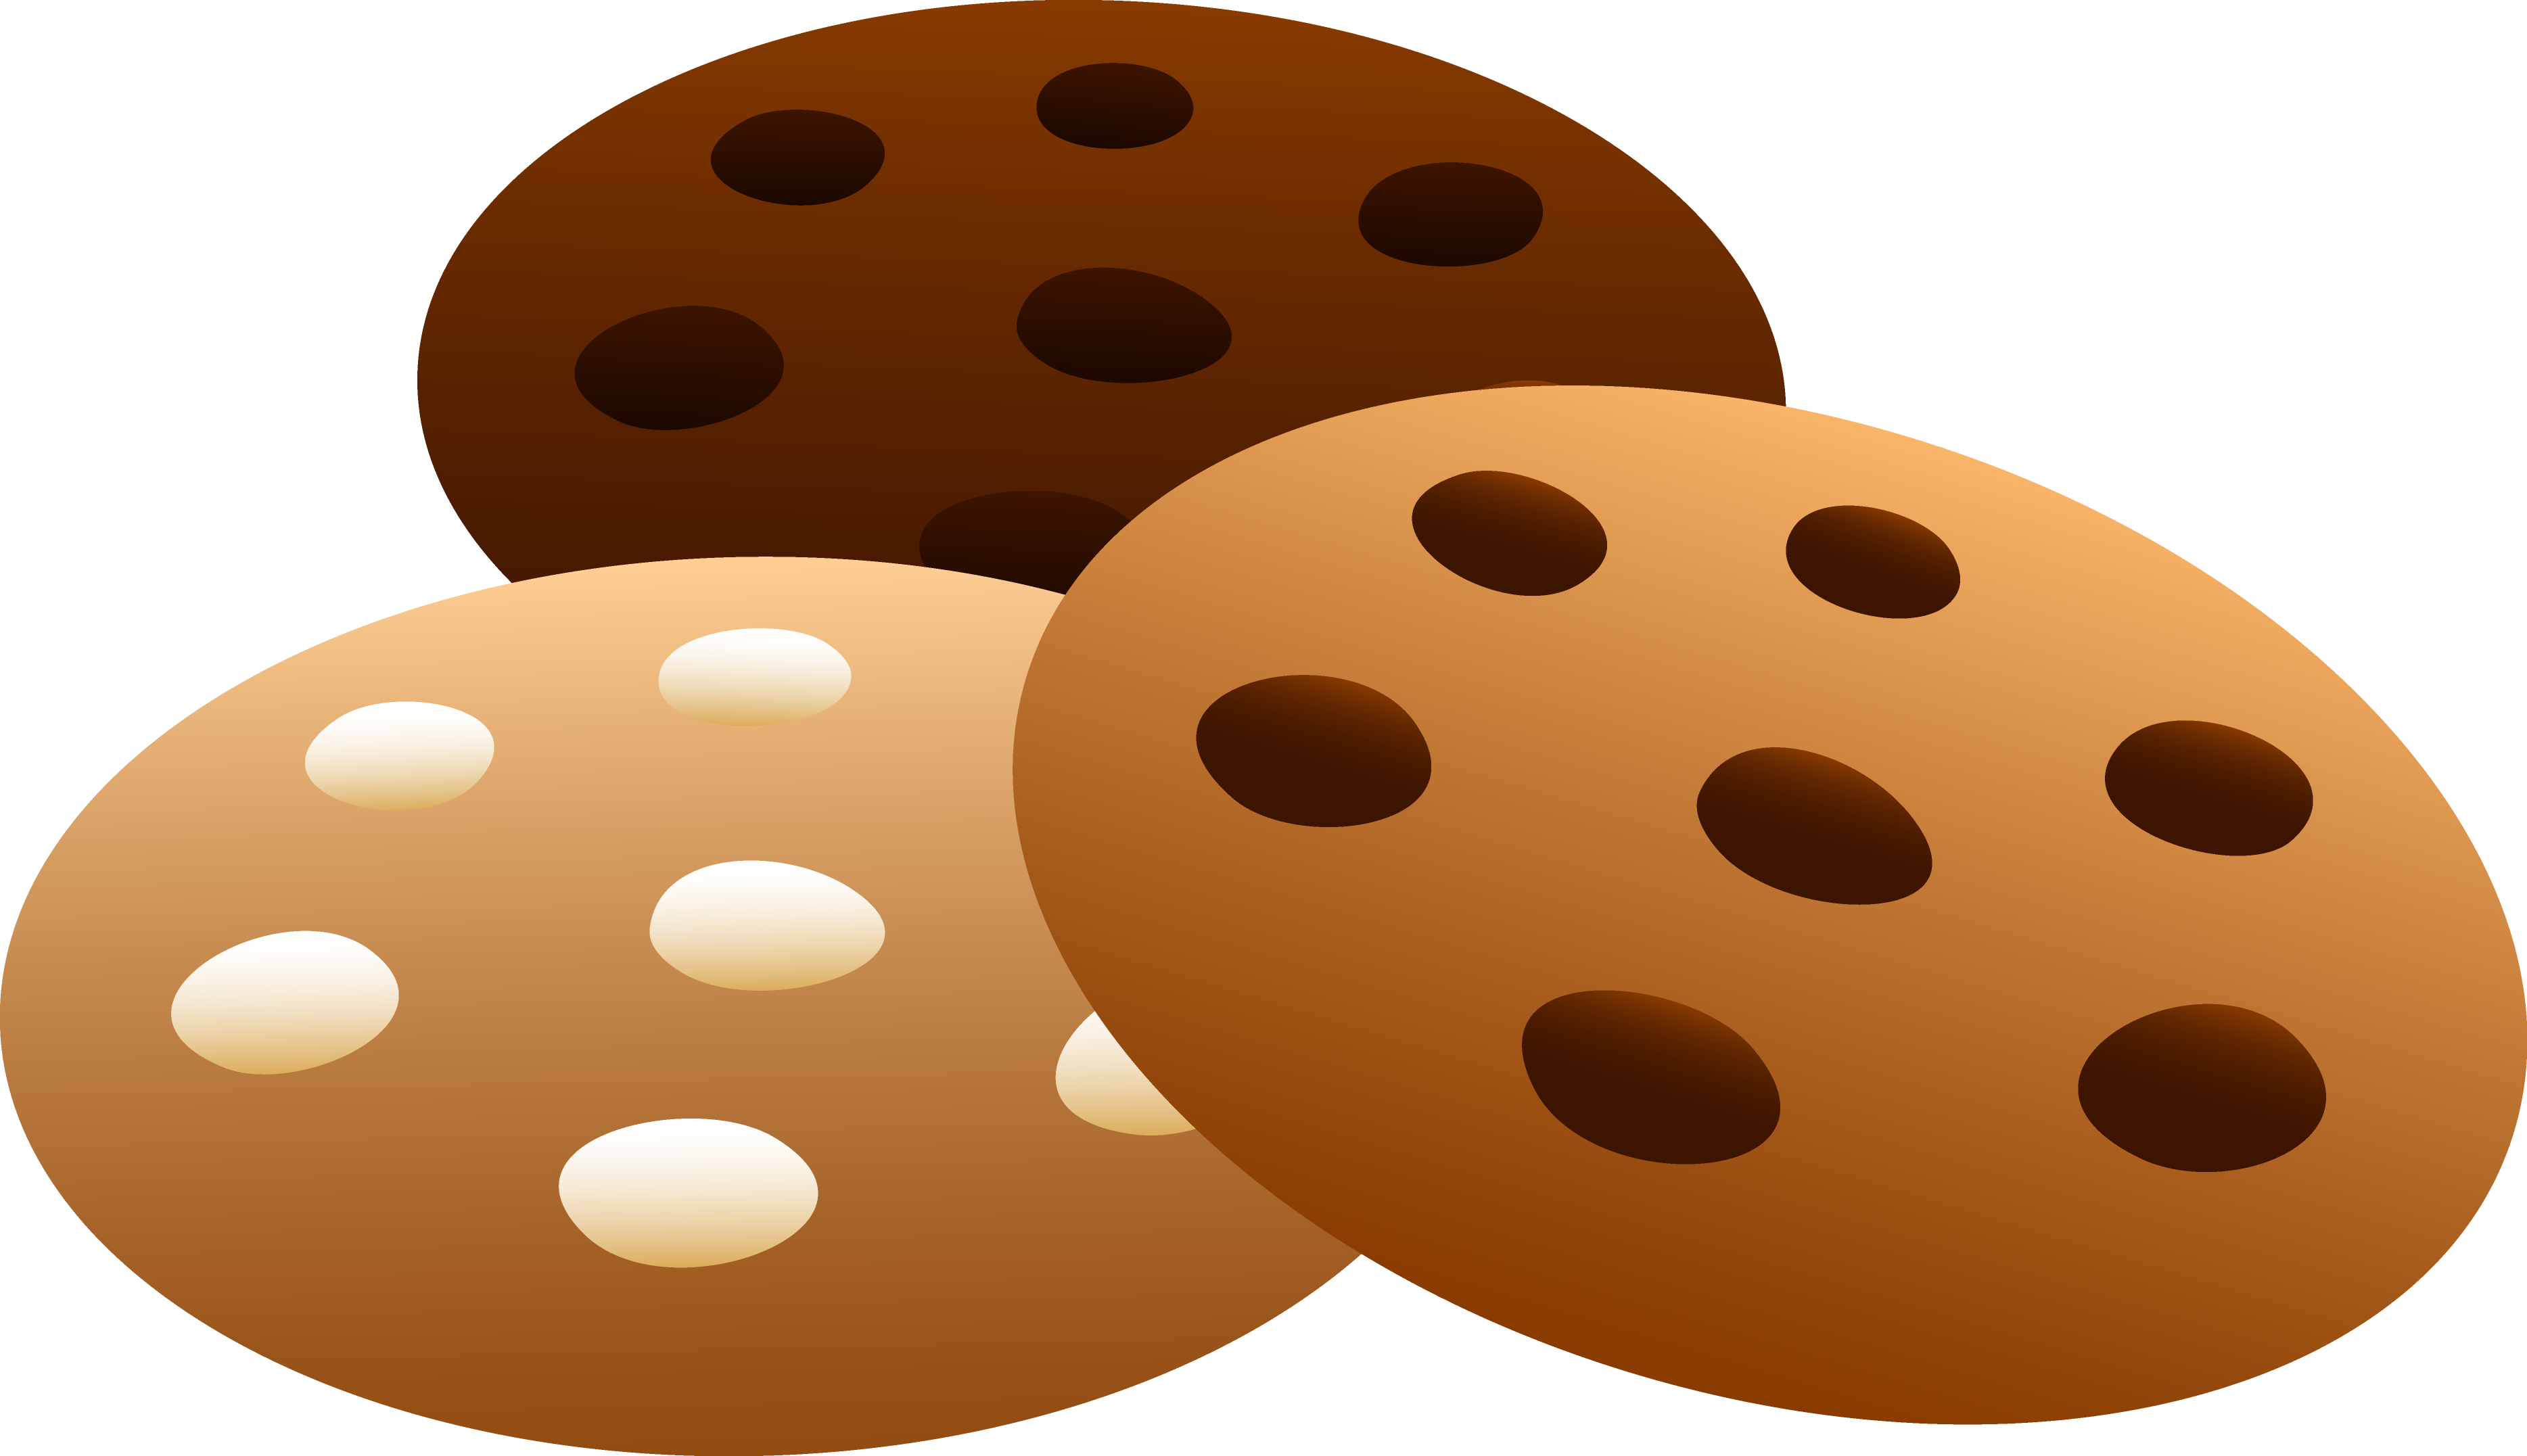 Biscuit drawing animated. Macadamia nut cookie clipart